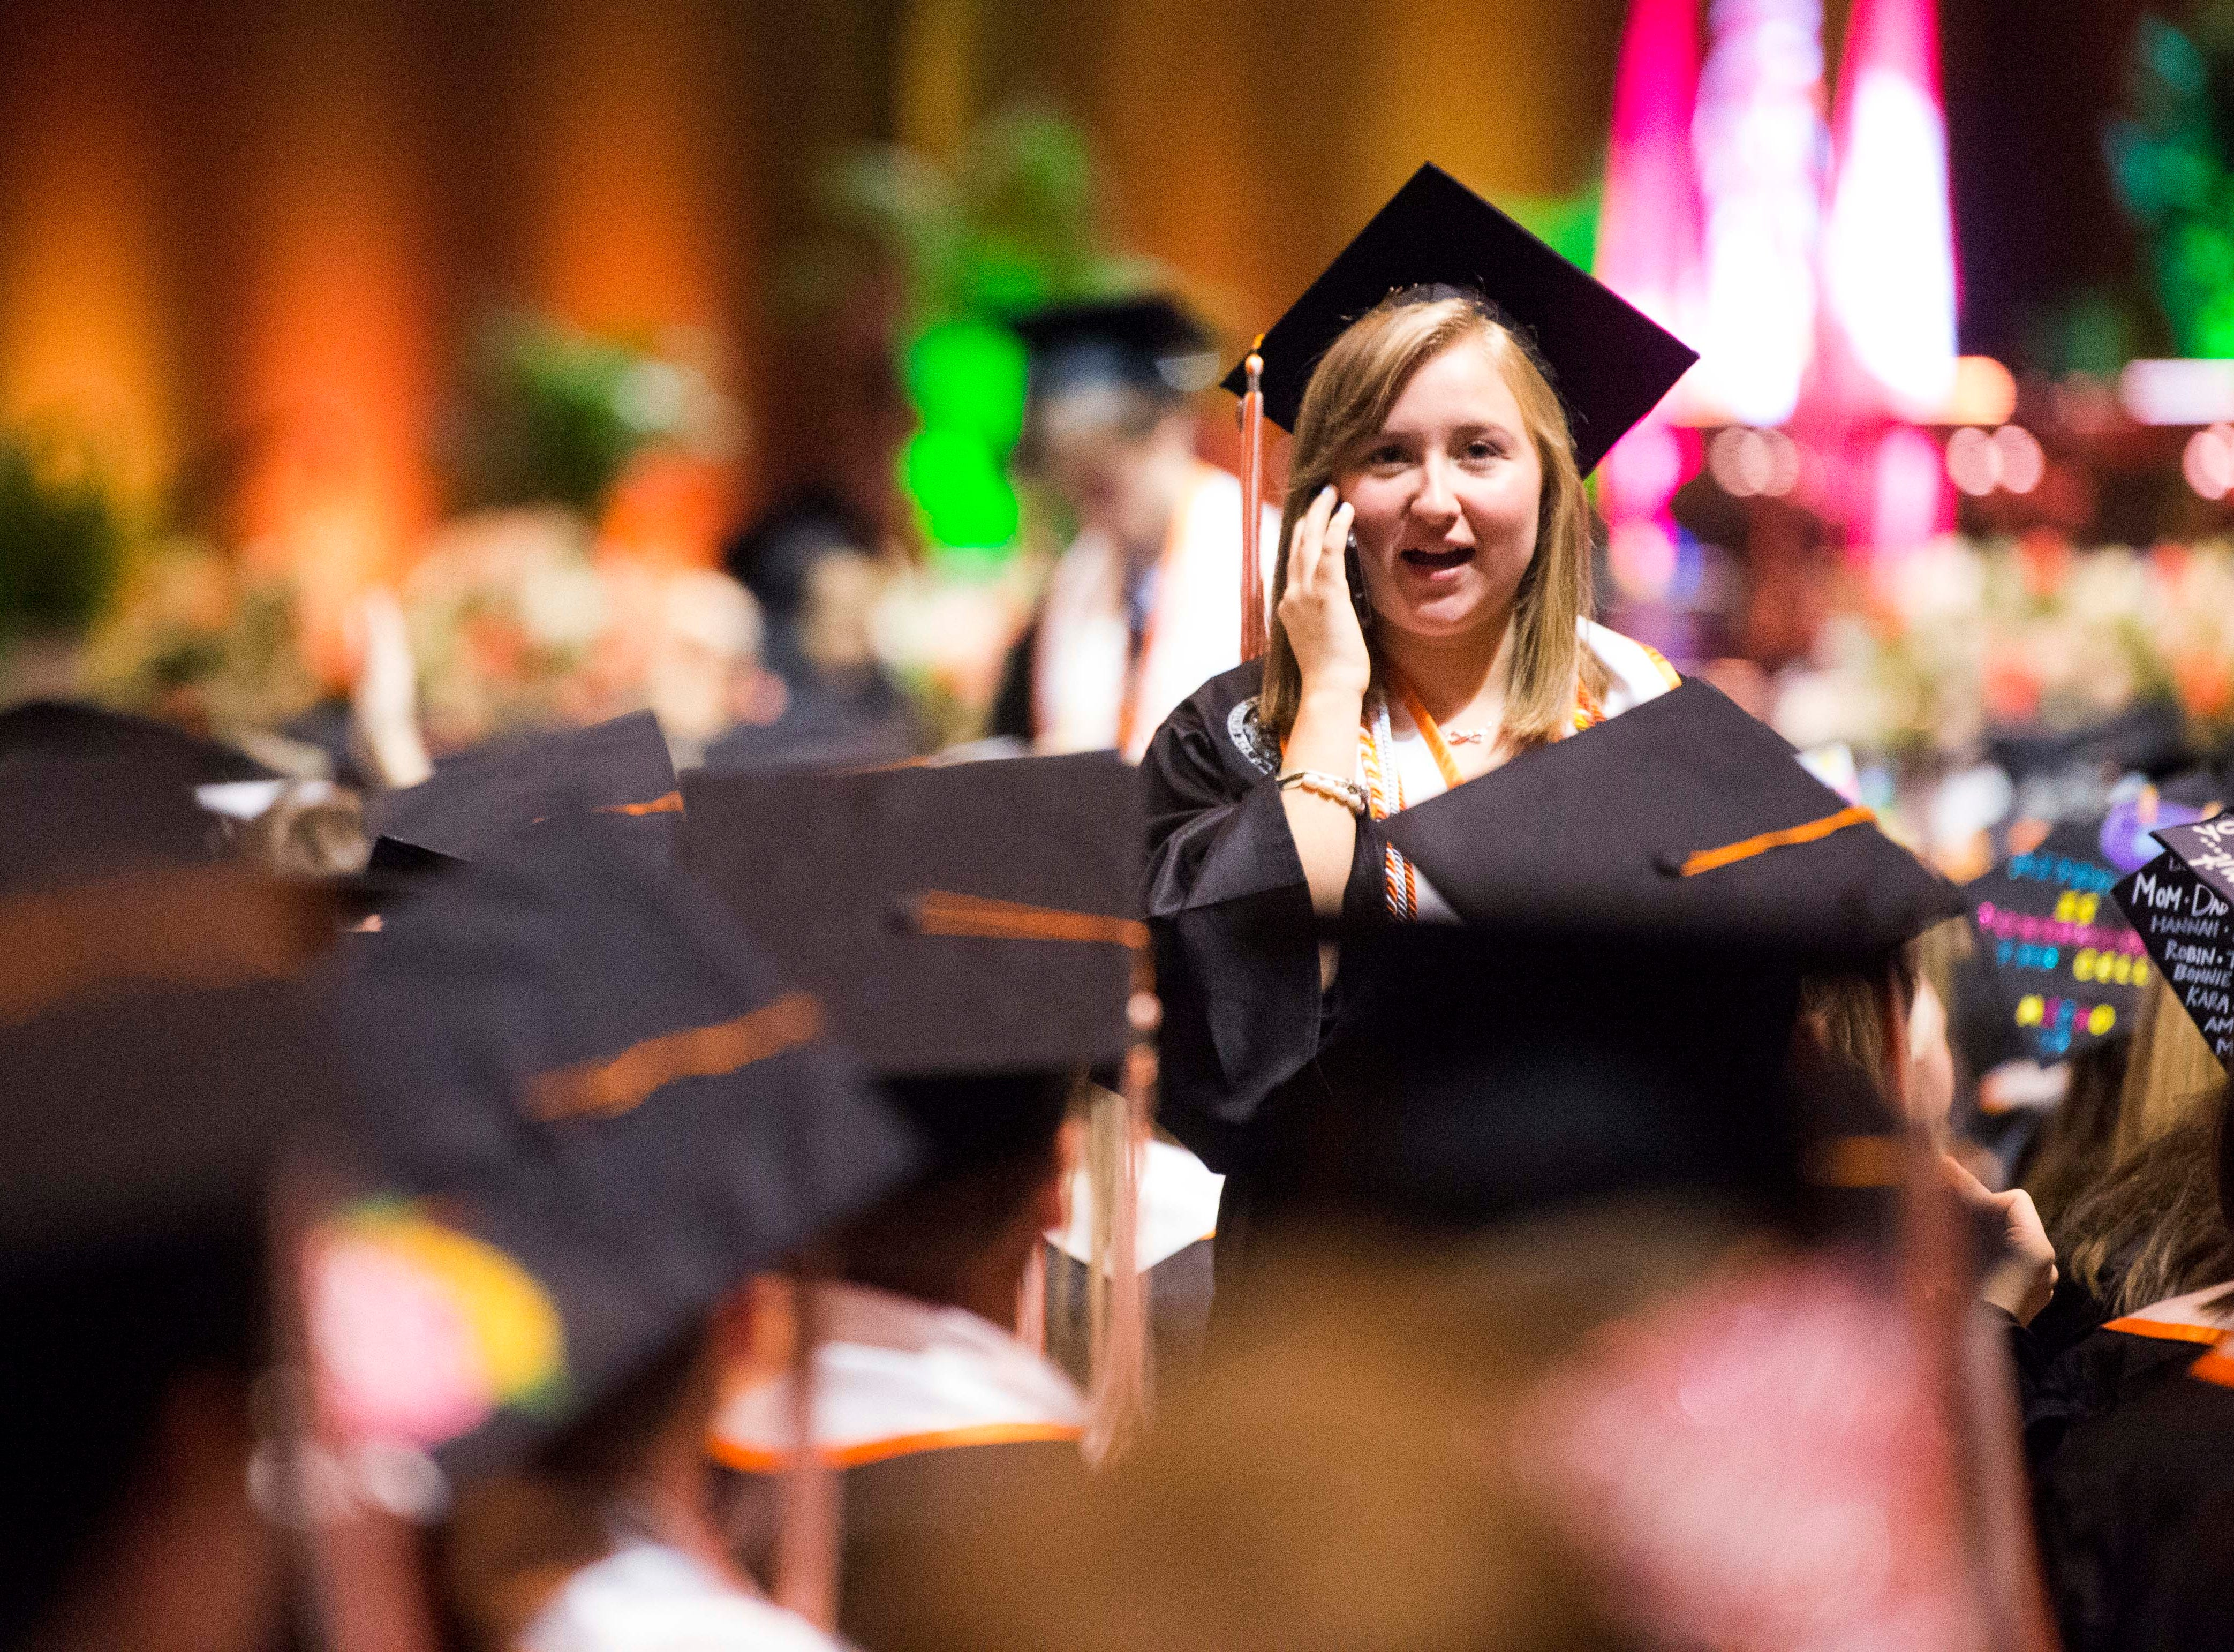 Students wait before University of Tennessee's College of Arts and Sciences commencement in Thompson-Boling arena in Knoxville, Saturday, May 11, 2019.